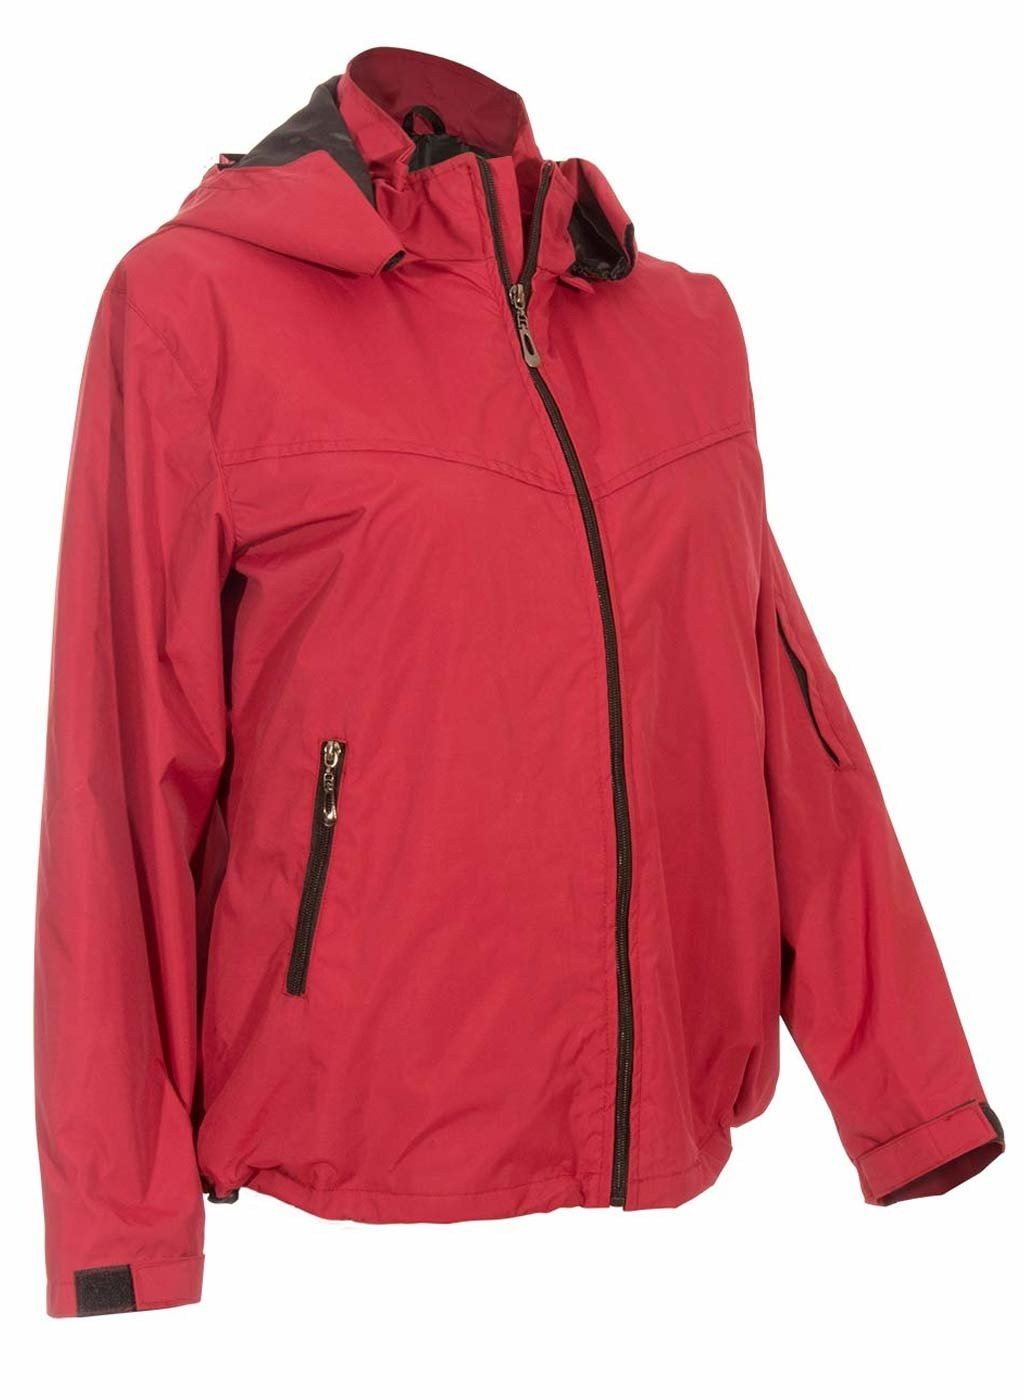 Red Womens Travel Jacket | Global Travel Clothings